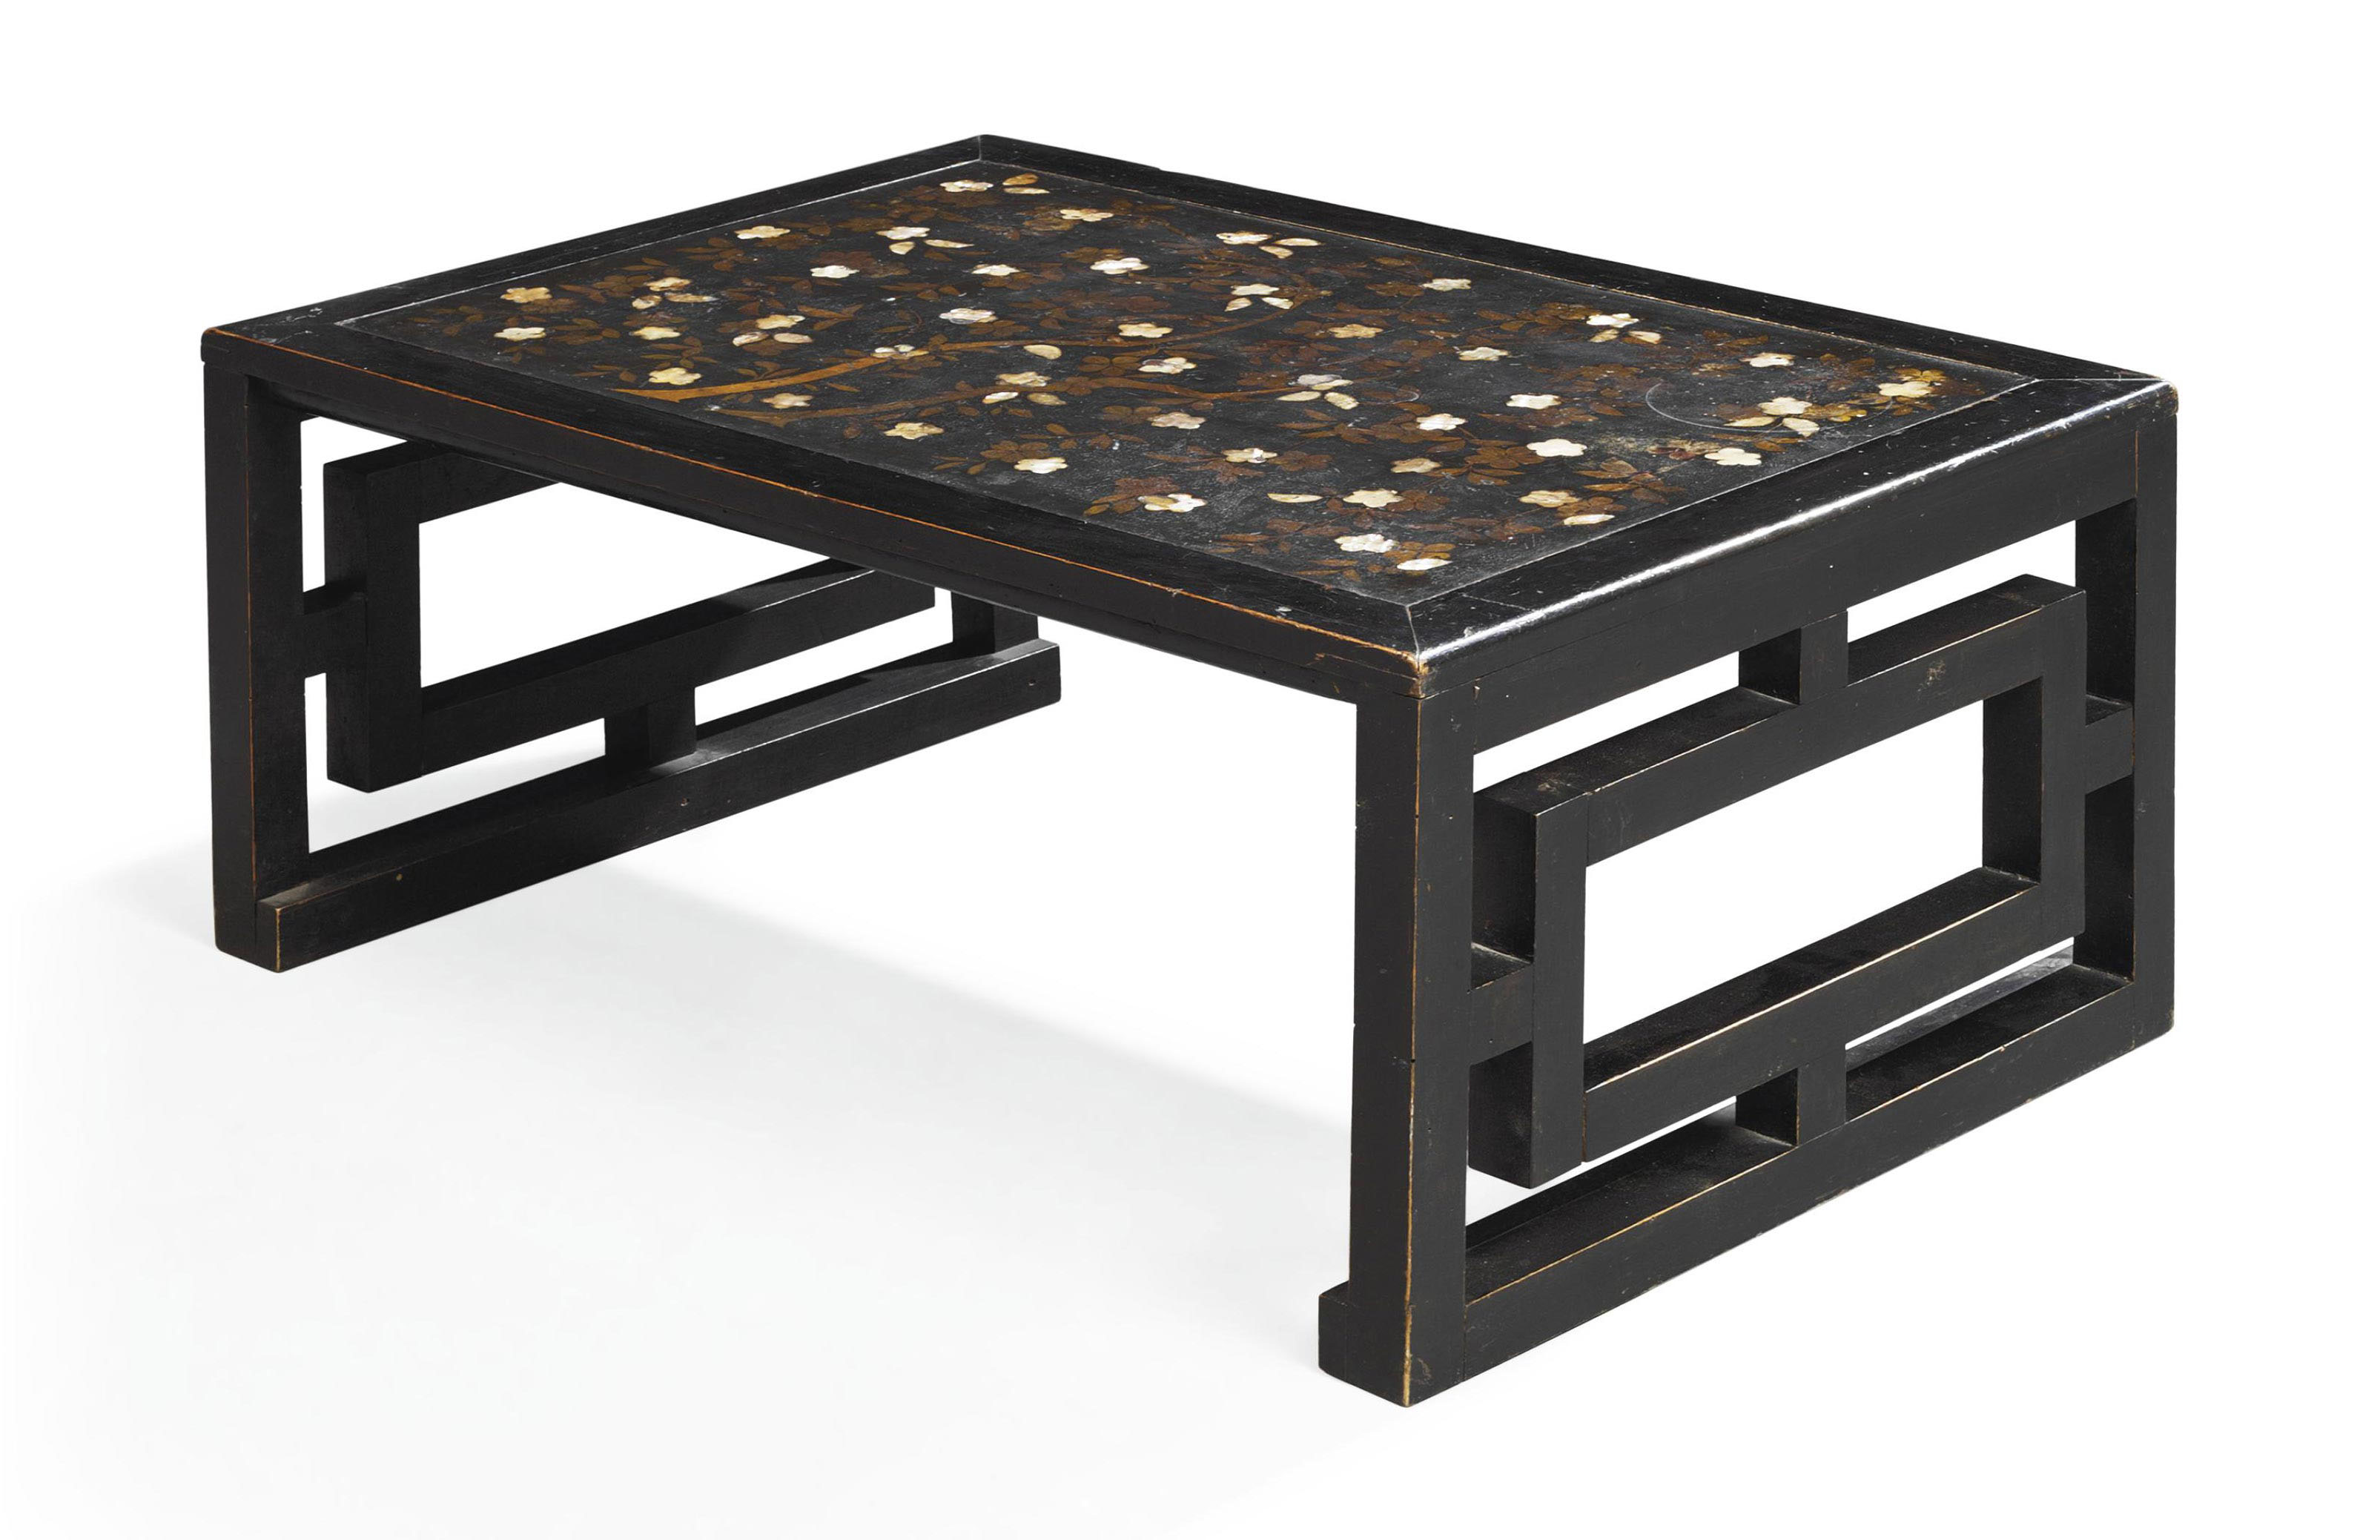 AN EBONISED LOW TABLE INCORPOR